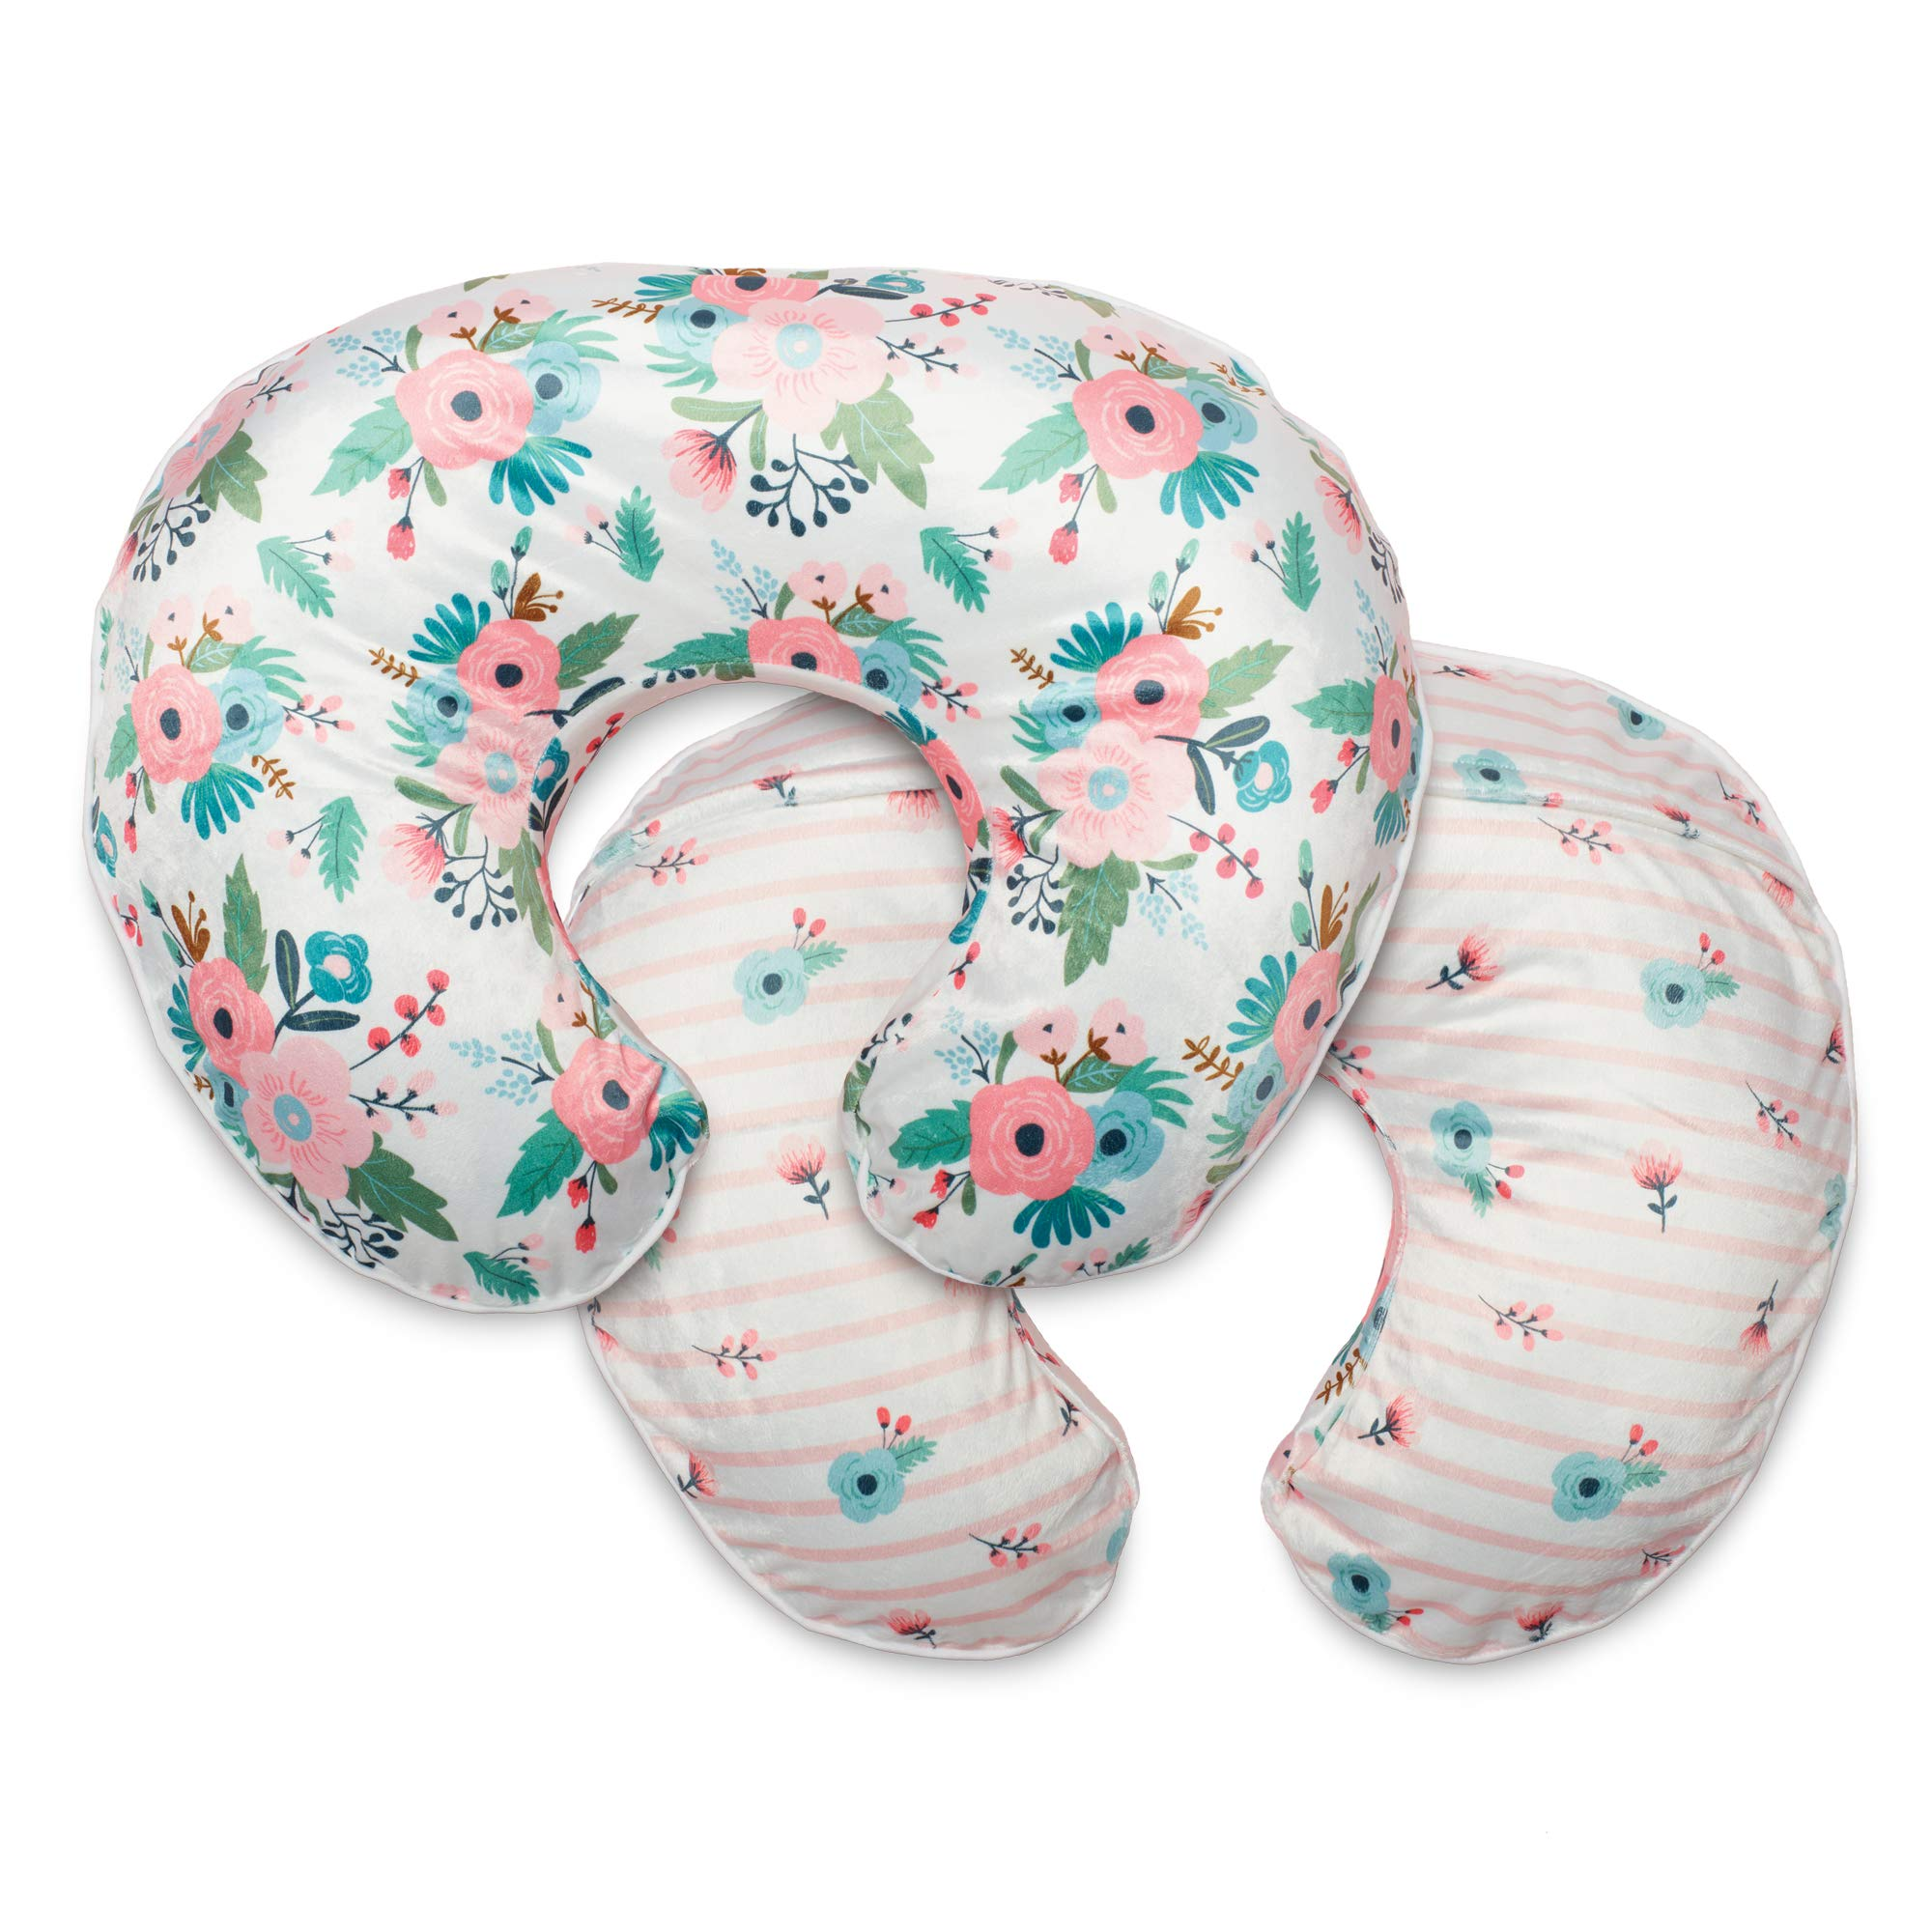 Boppy Boutique Pillow Cover, Pink White Floral Duet, Minky Fabric in a fashionable two-sided design, Fits ALL Boppy Nursing Pillows and Positioners by Boppy